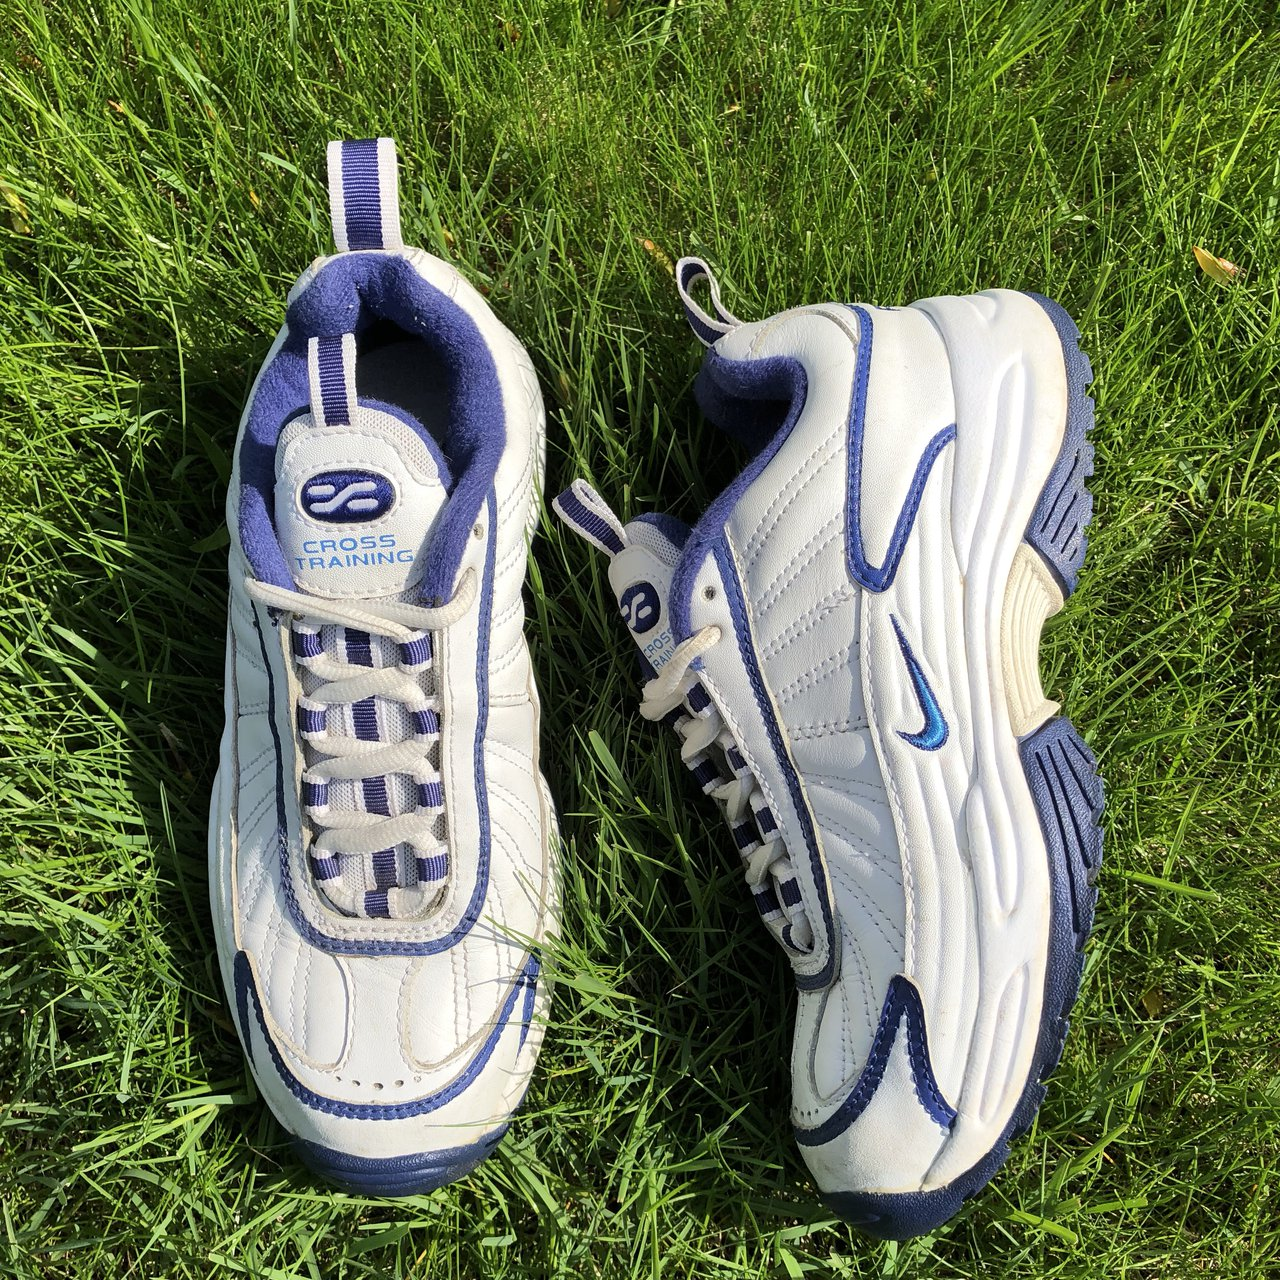 26dde9966ce7 Year 2000 Nike Air cross trainers in a blue   white color to - Depop